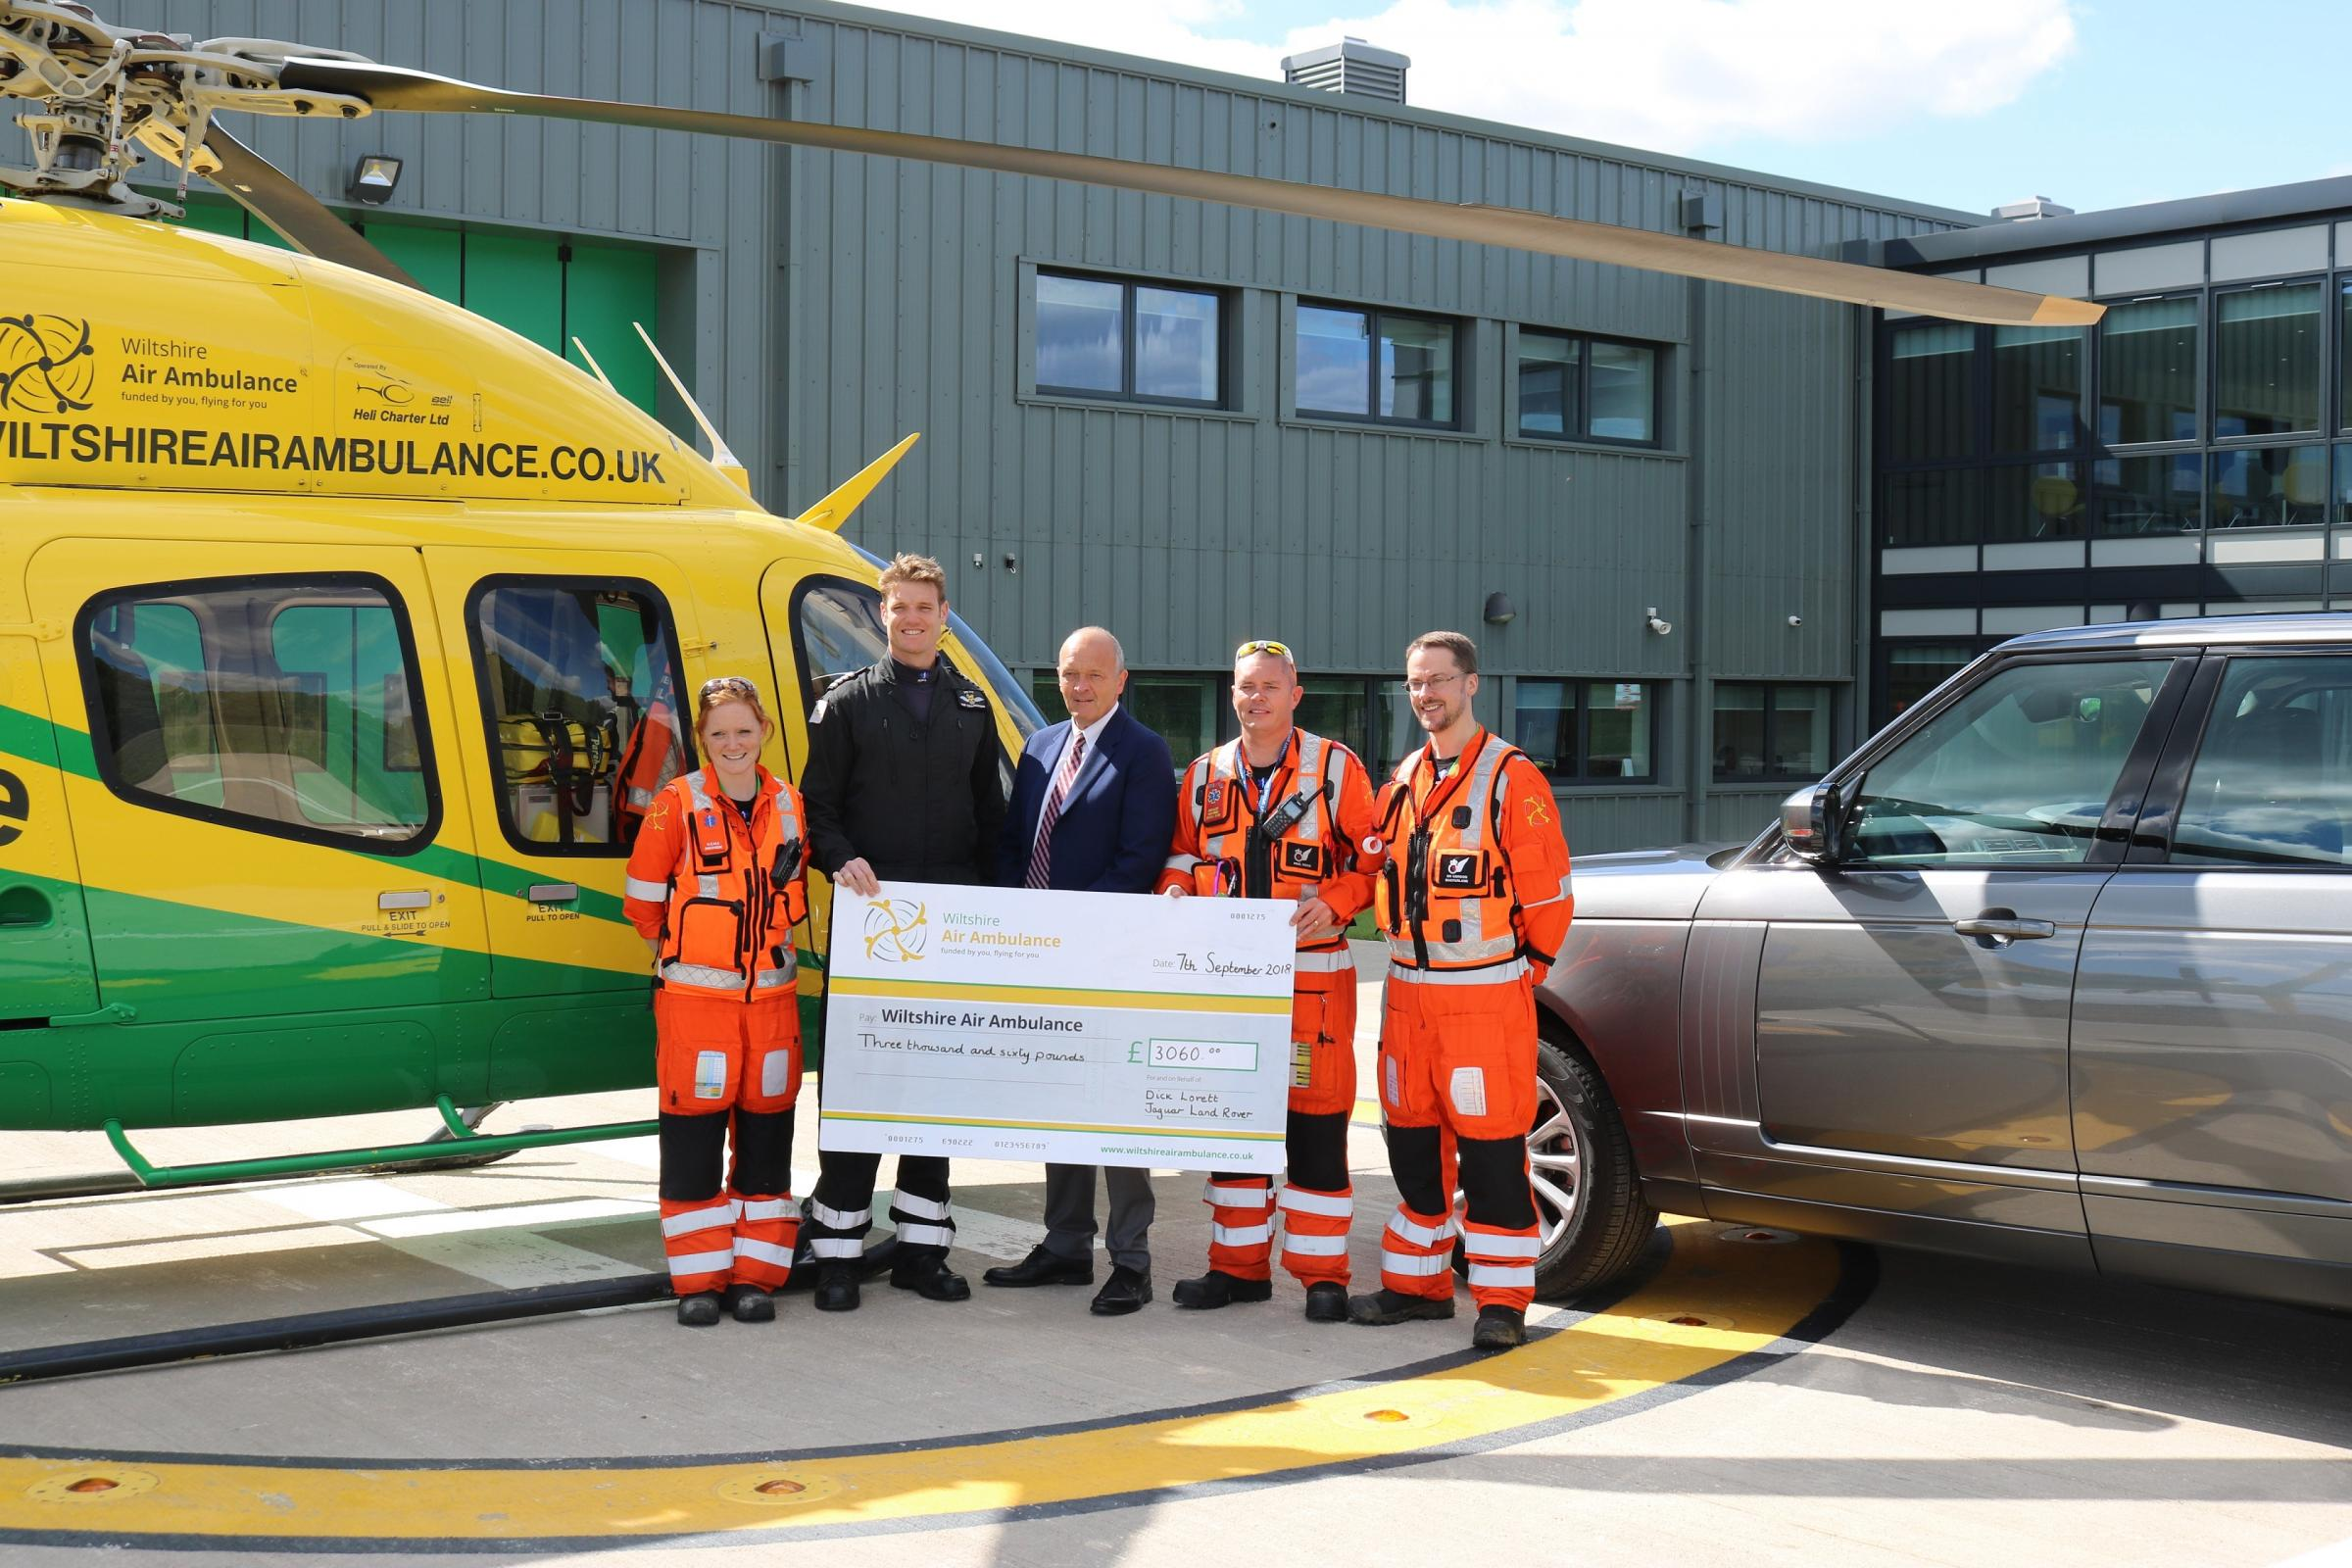 Dick Lovett Jaguar Melksham's Head of Business Richard Davies (centre) presents a cheque for £3,060 to the Wiltshire Air Ambulance crew